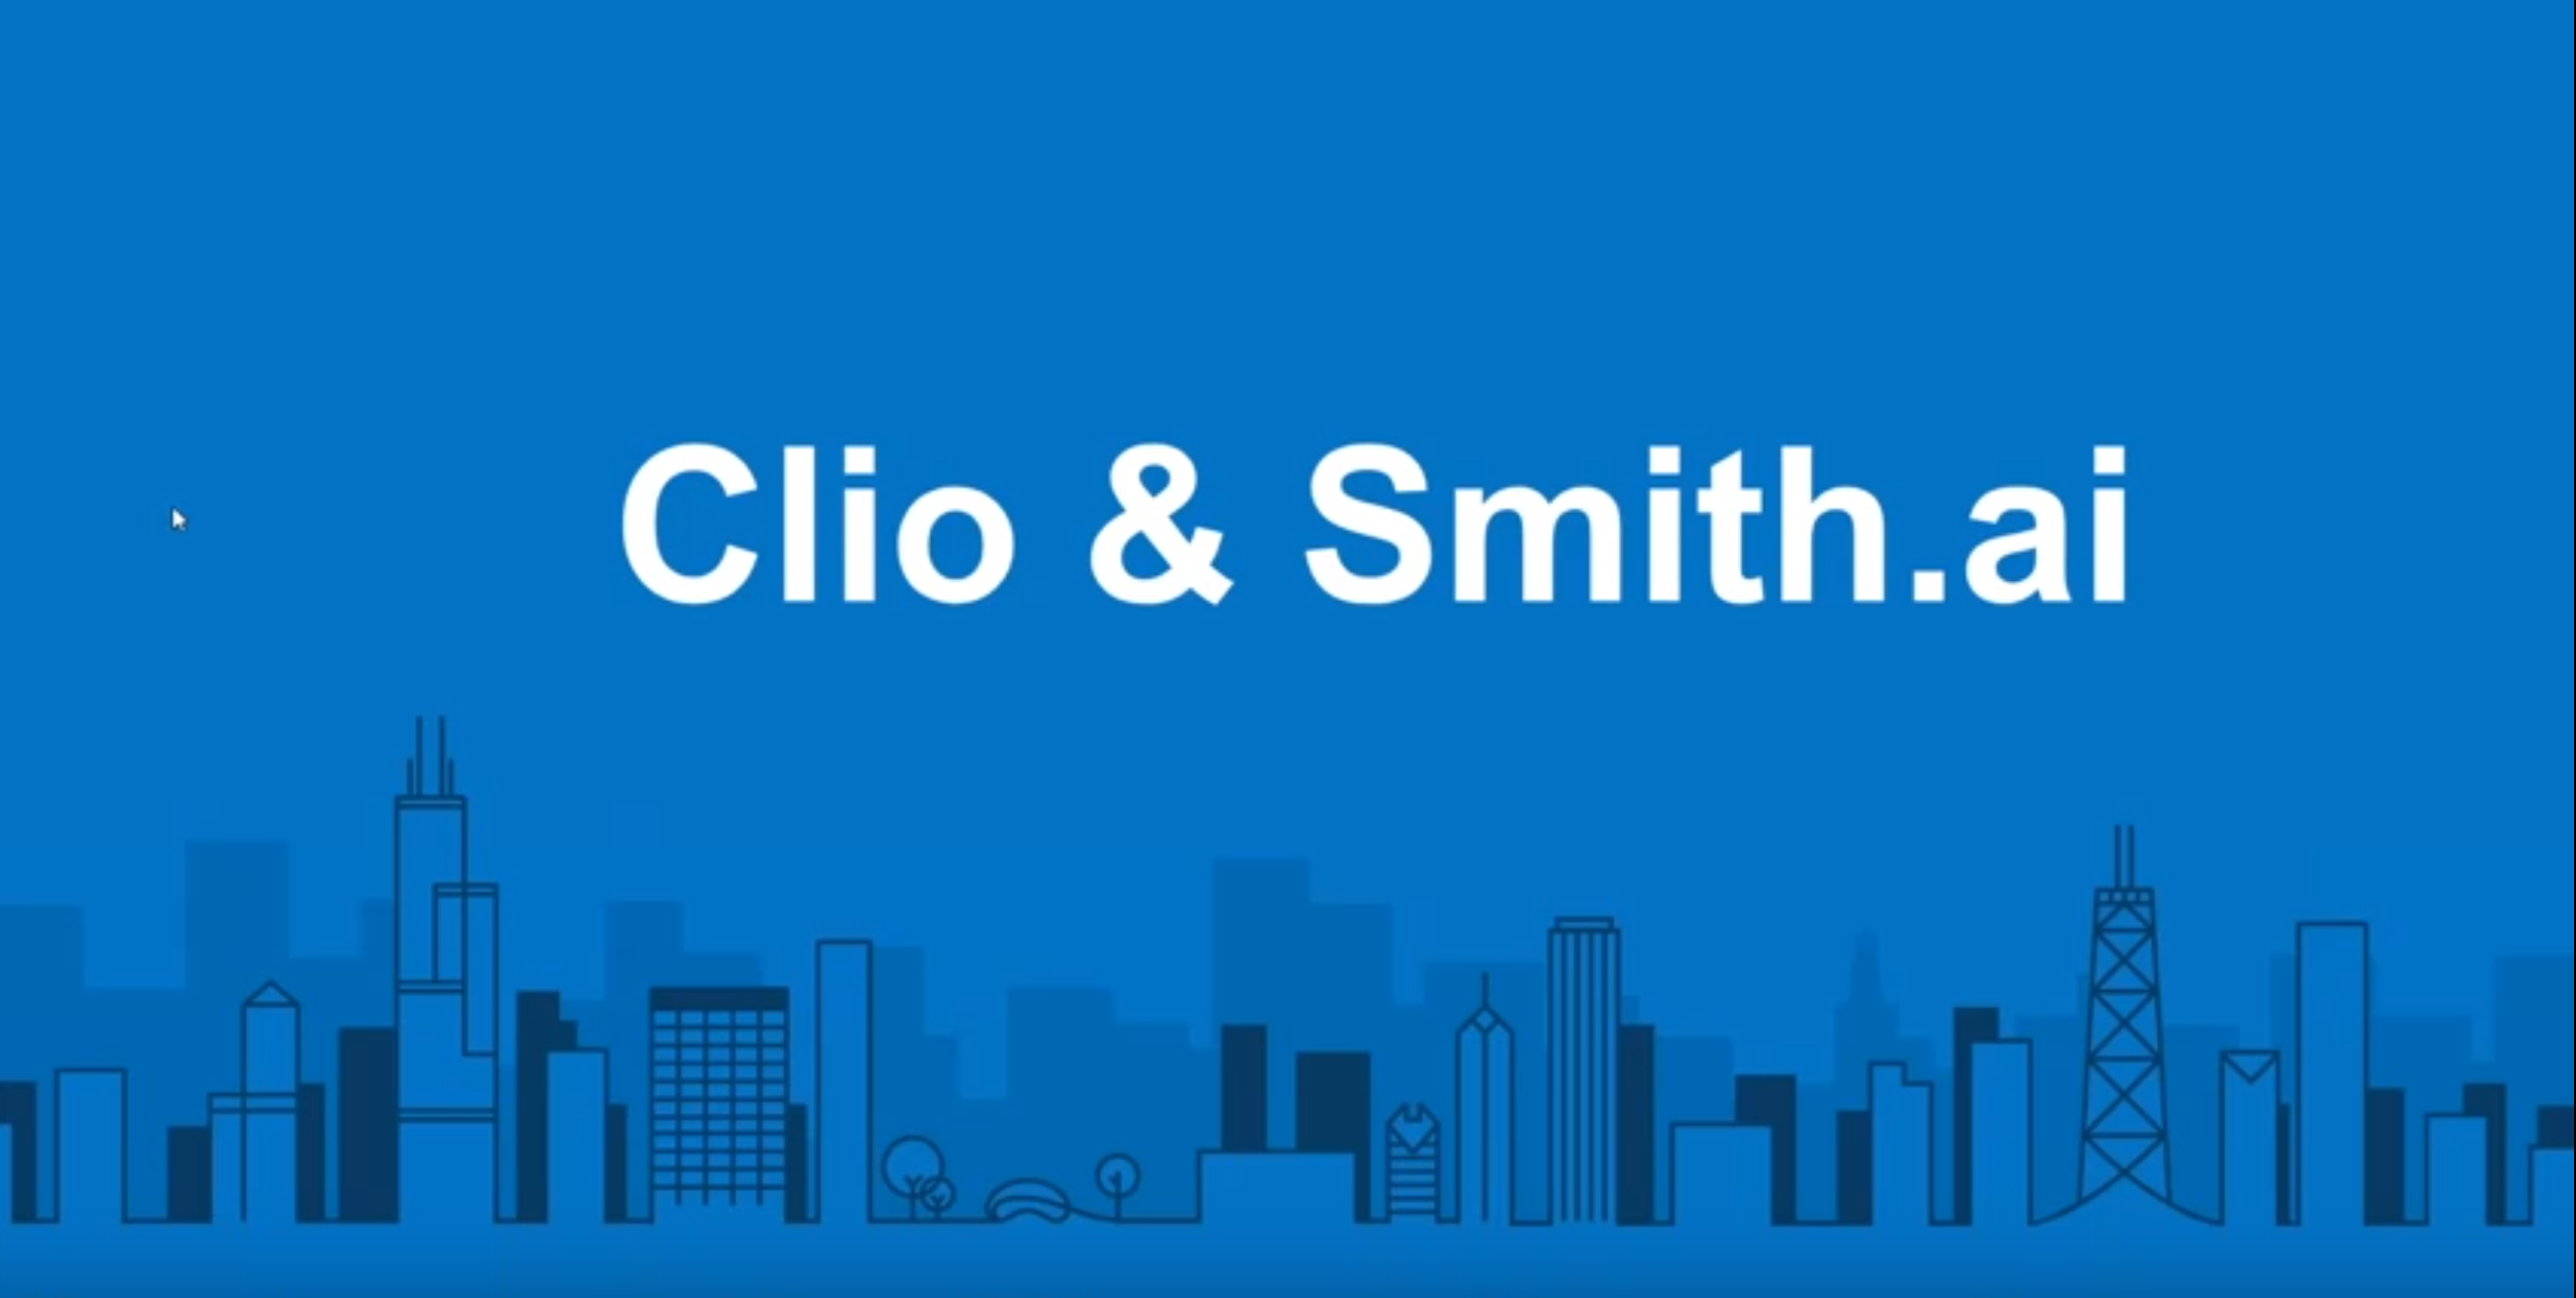 WEBINAR: How to Make the Most of Smith.ai with Clio